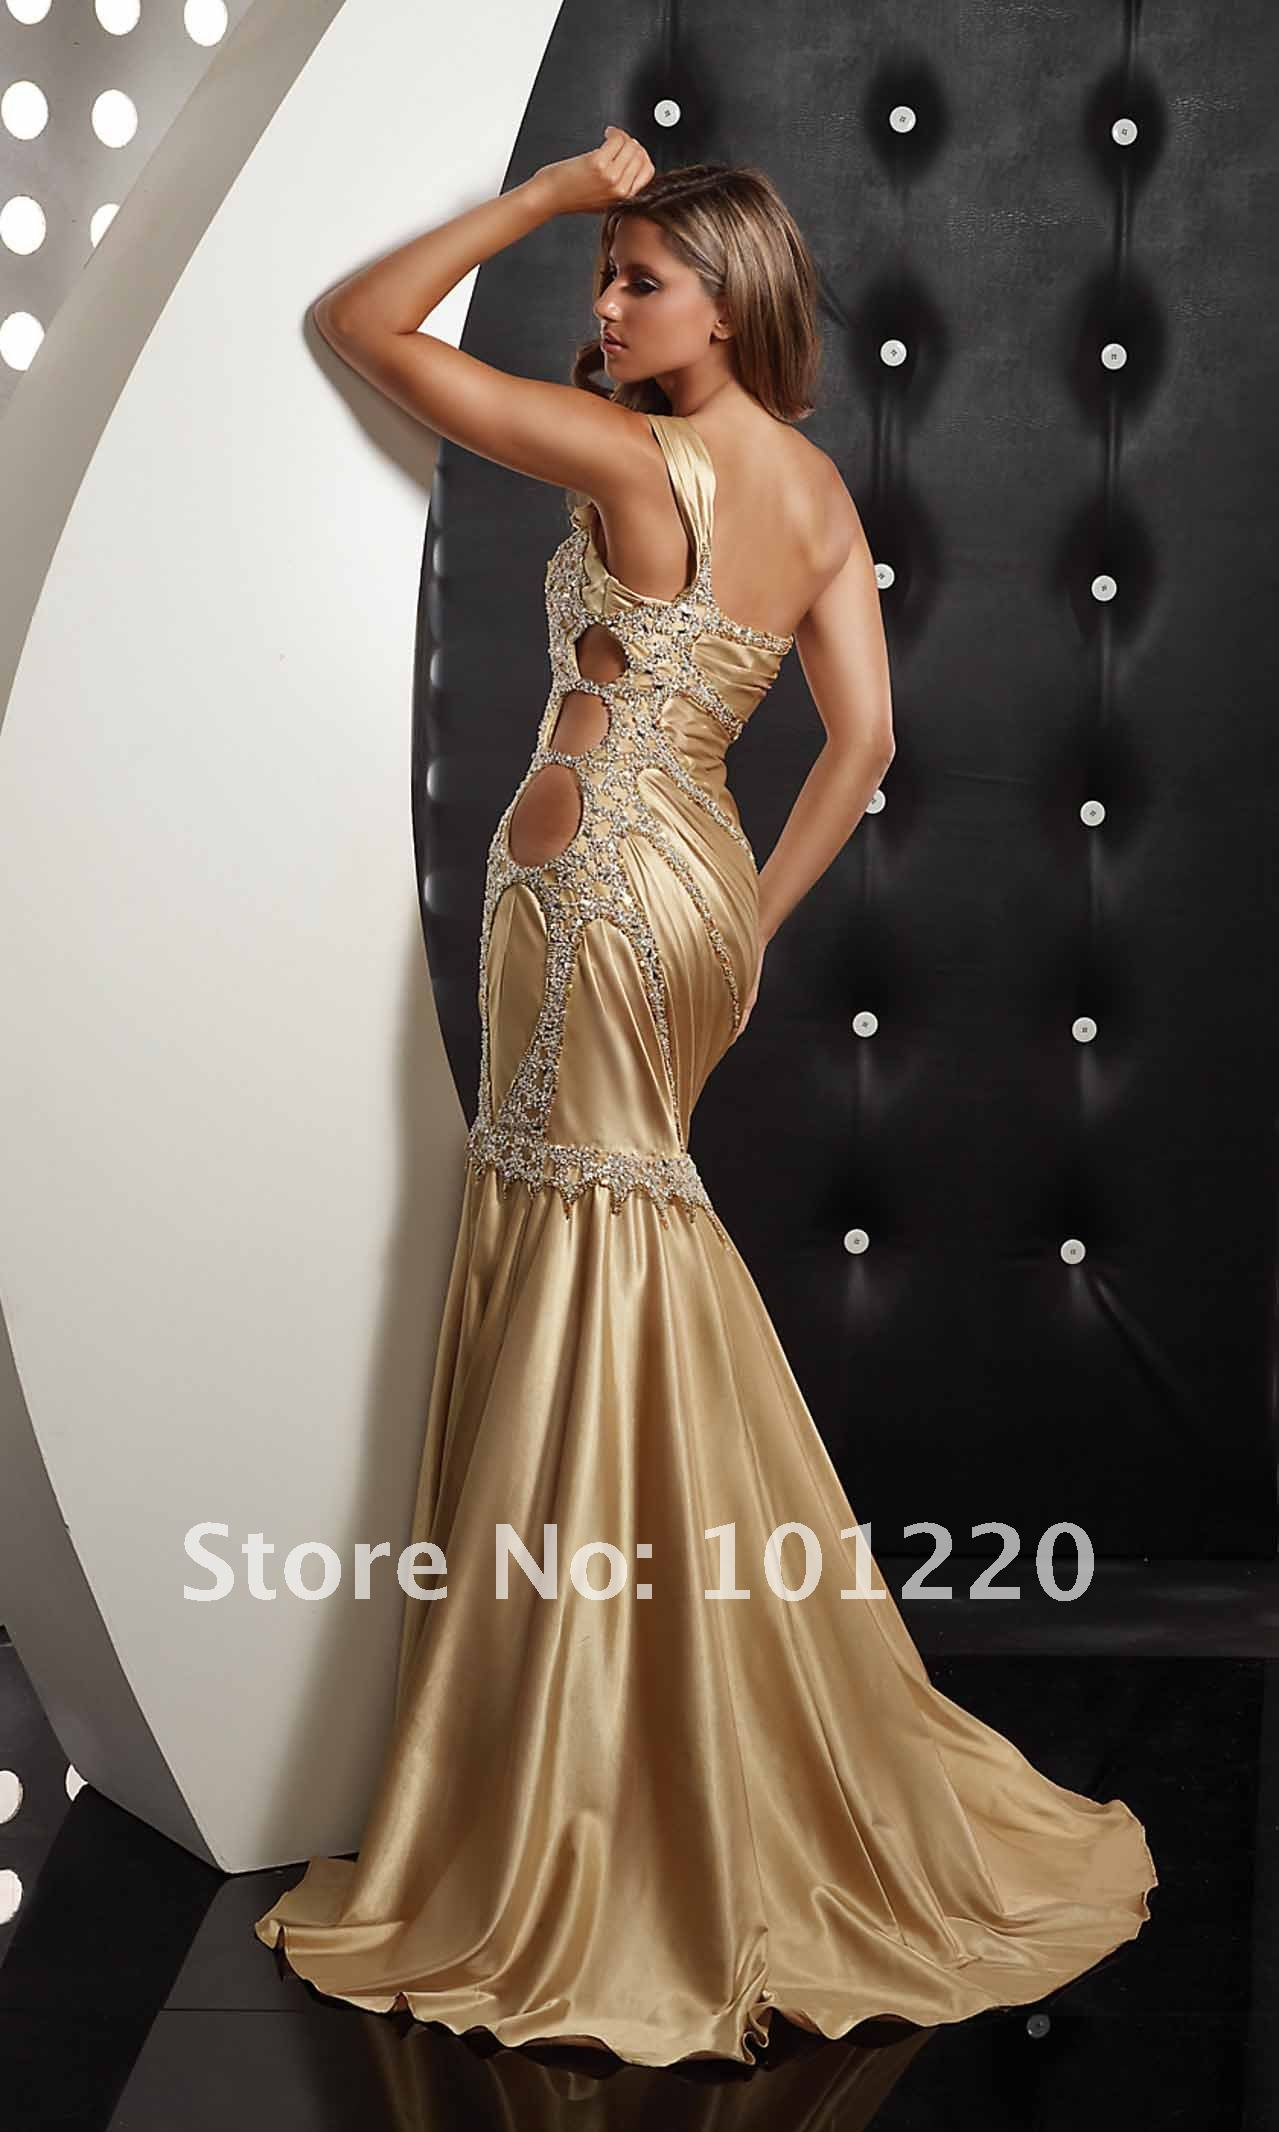 The gallery for Gold Mermaid Wedding Dresses